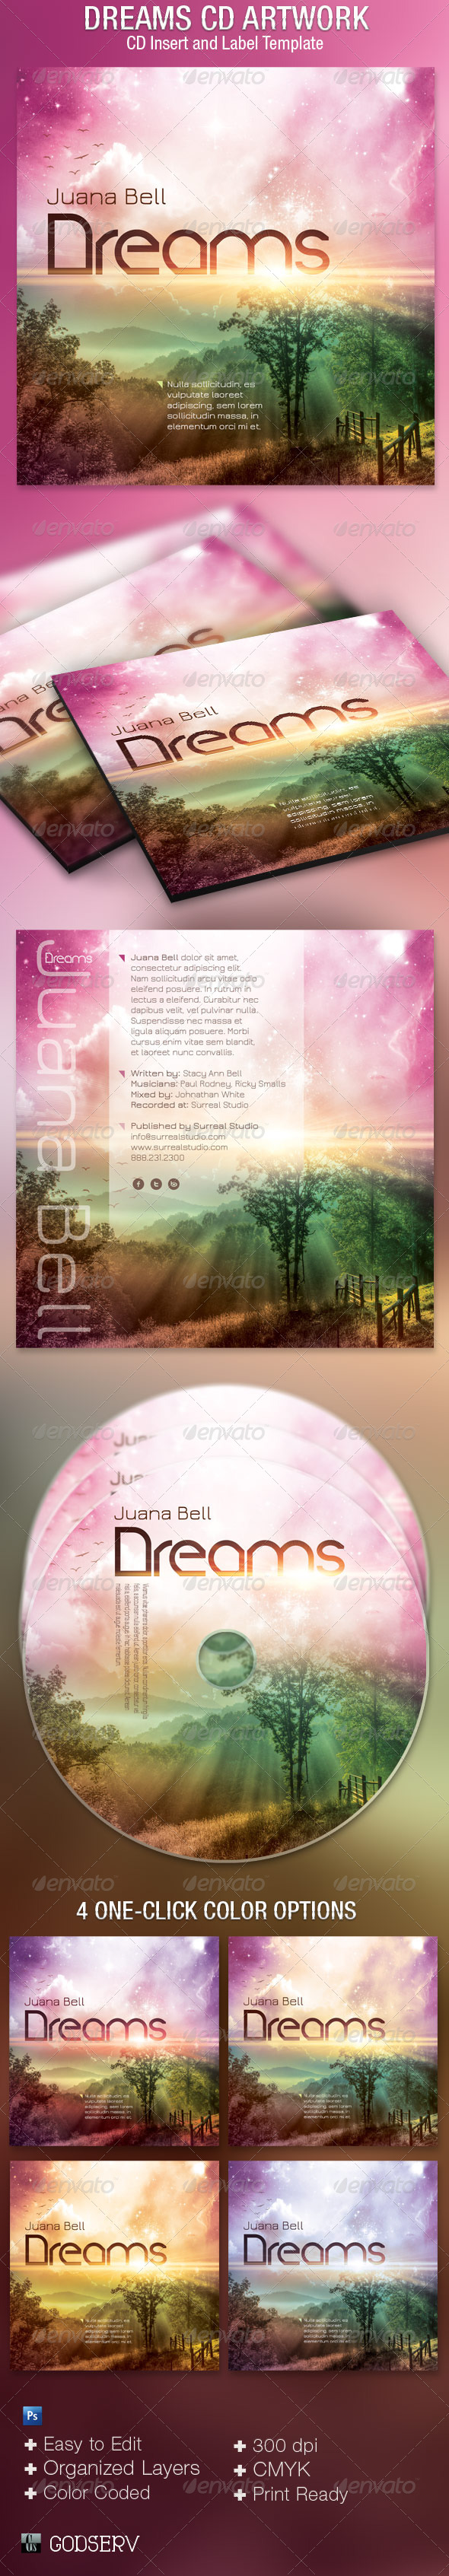 GraphicRiver Dreams CD Artwork Template 5033594